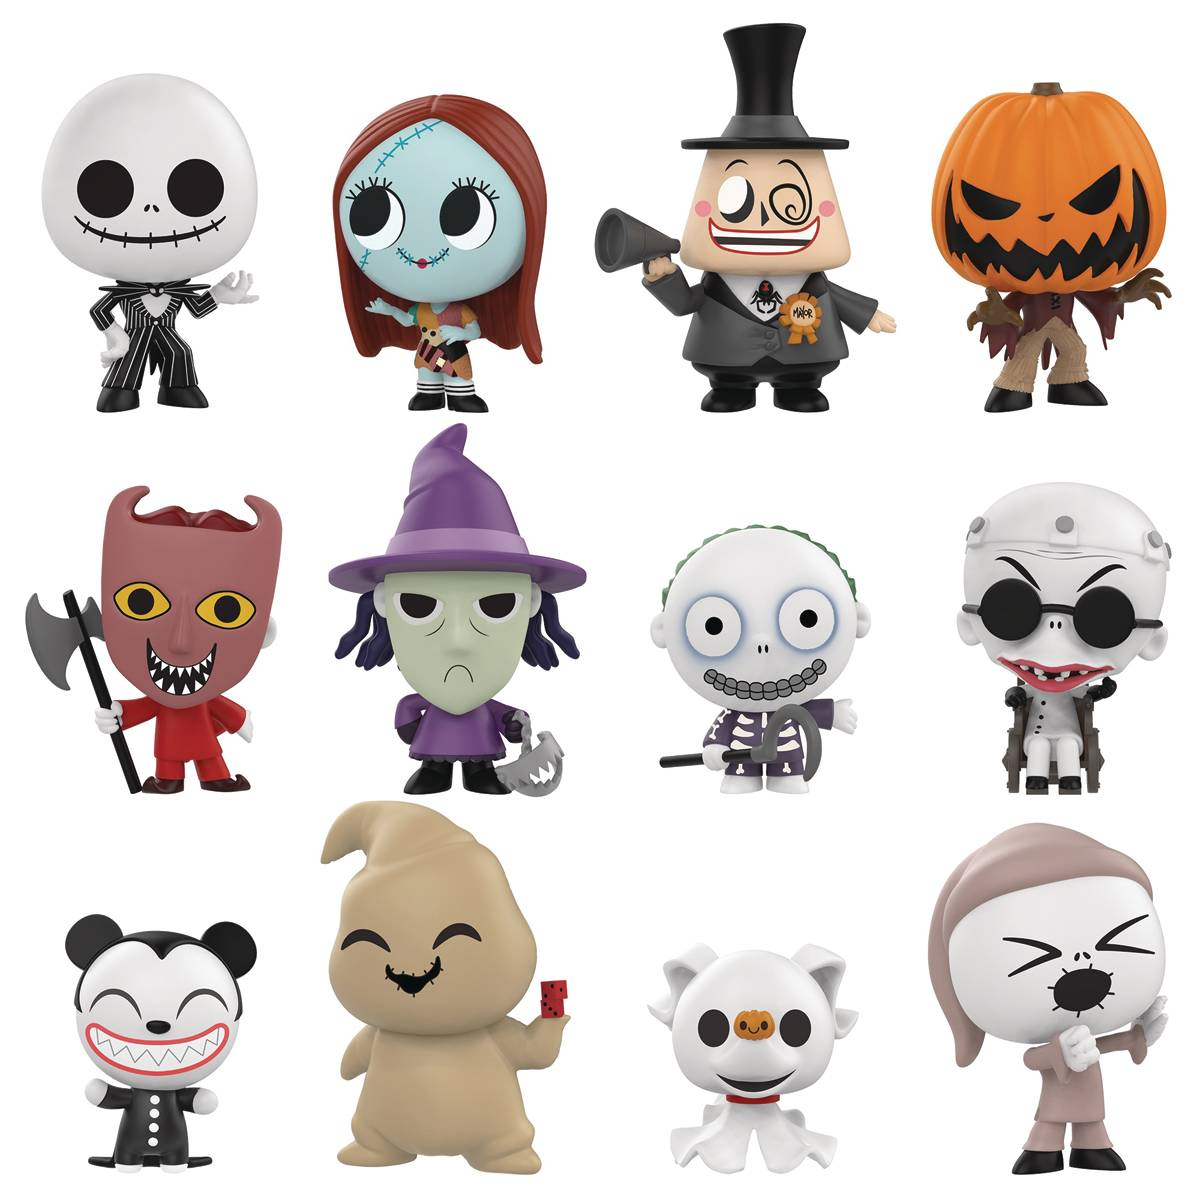 The Nightmare Before Christmas Disney Mystery Minis by Funko - Mindzai